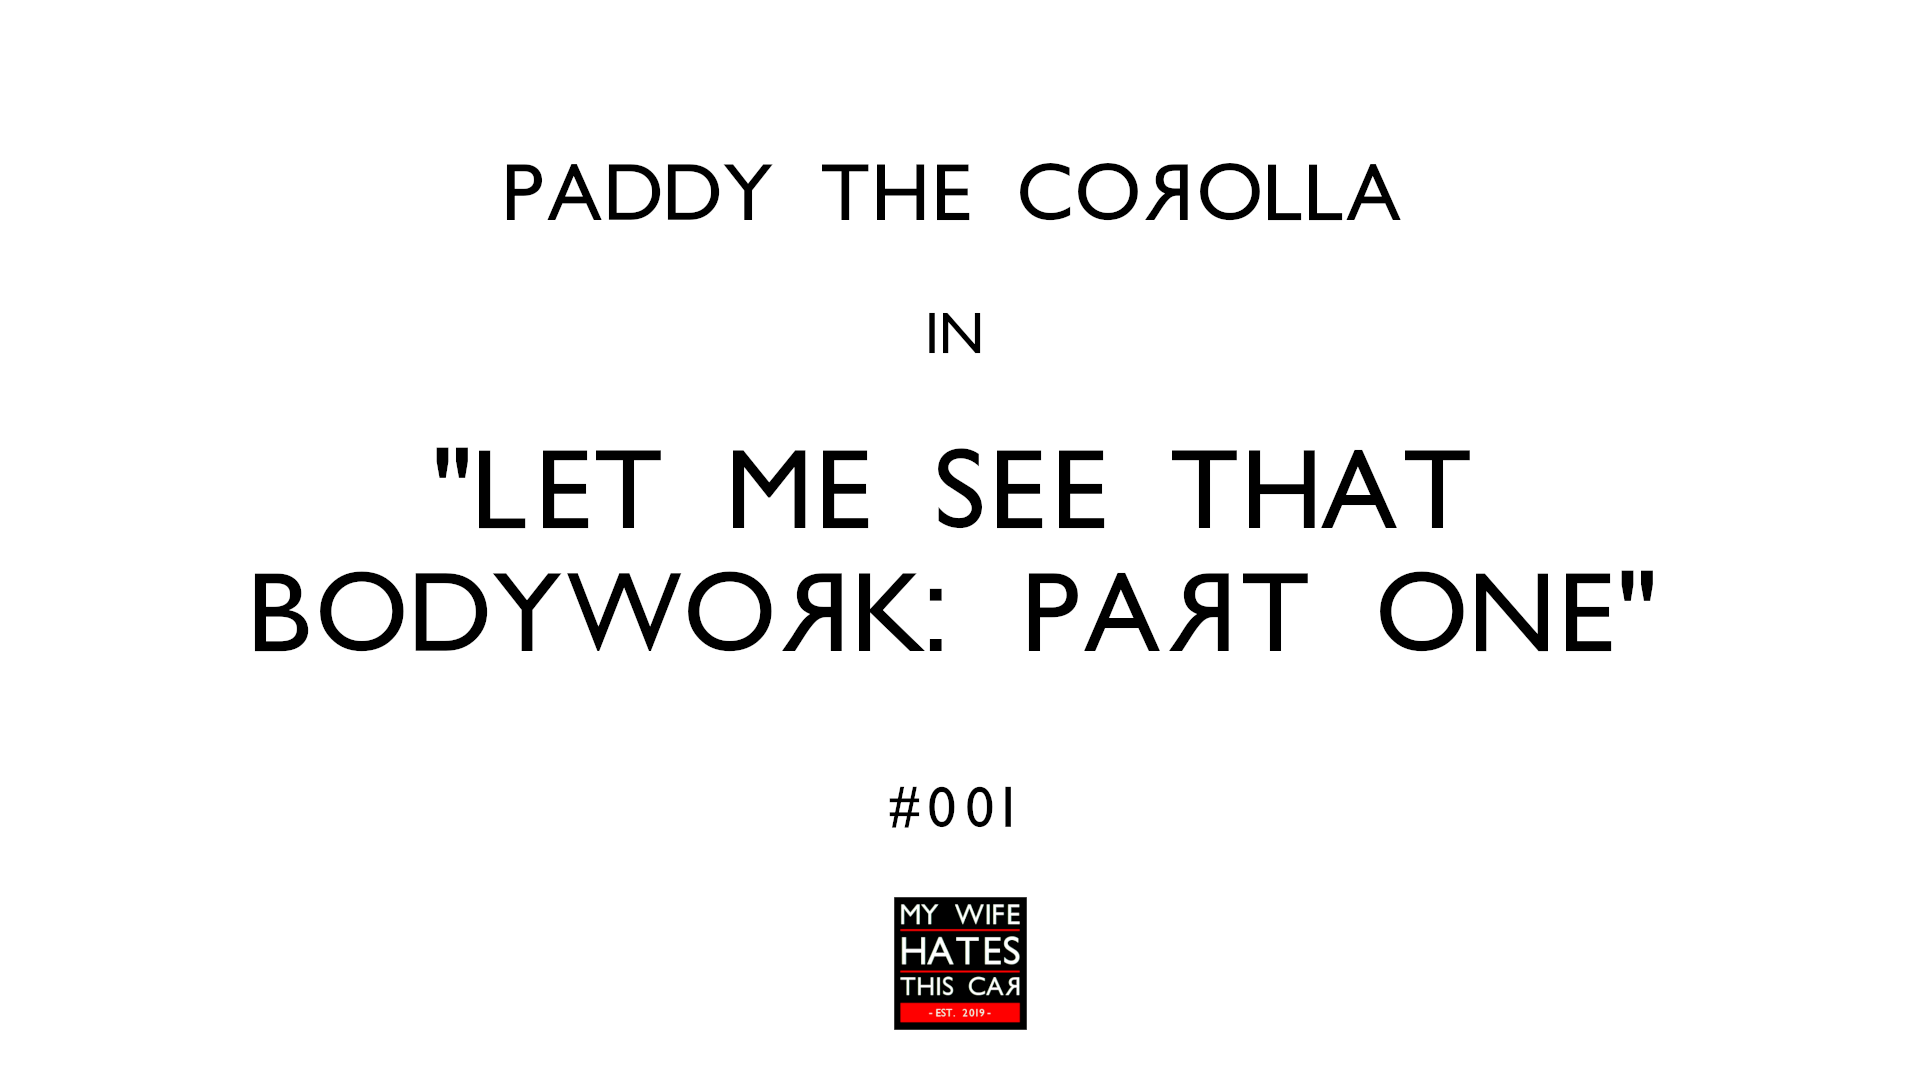 Paddy the Toyota Corolla: Let Me See That Bodywork